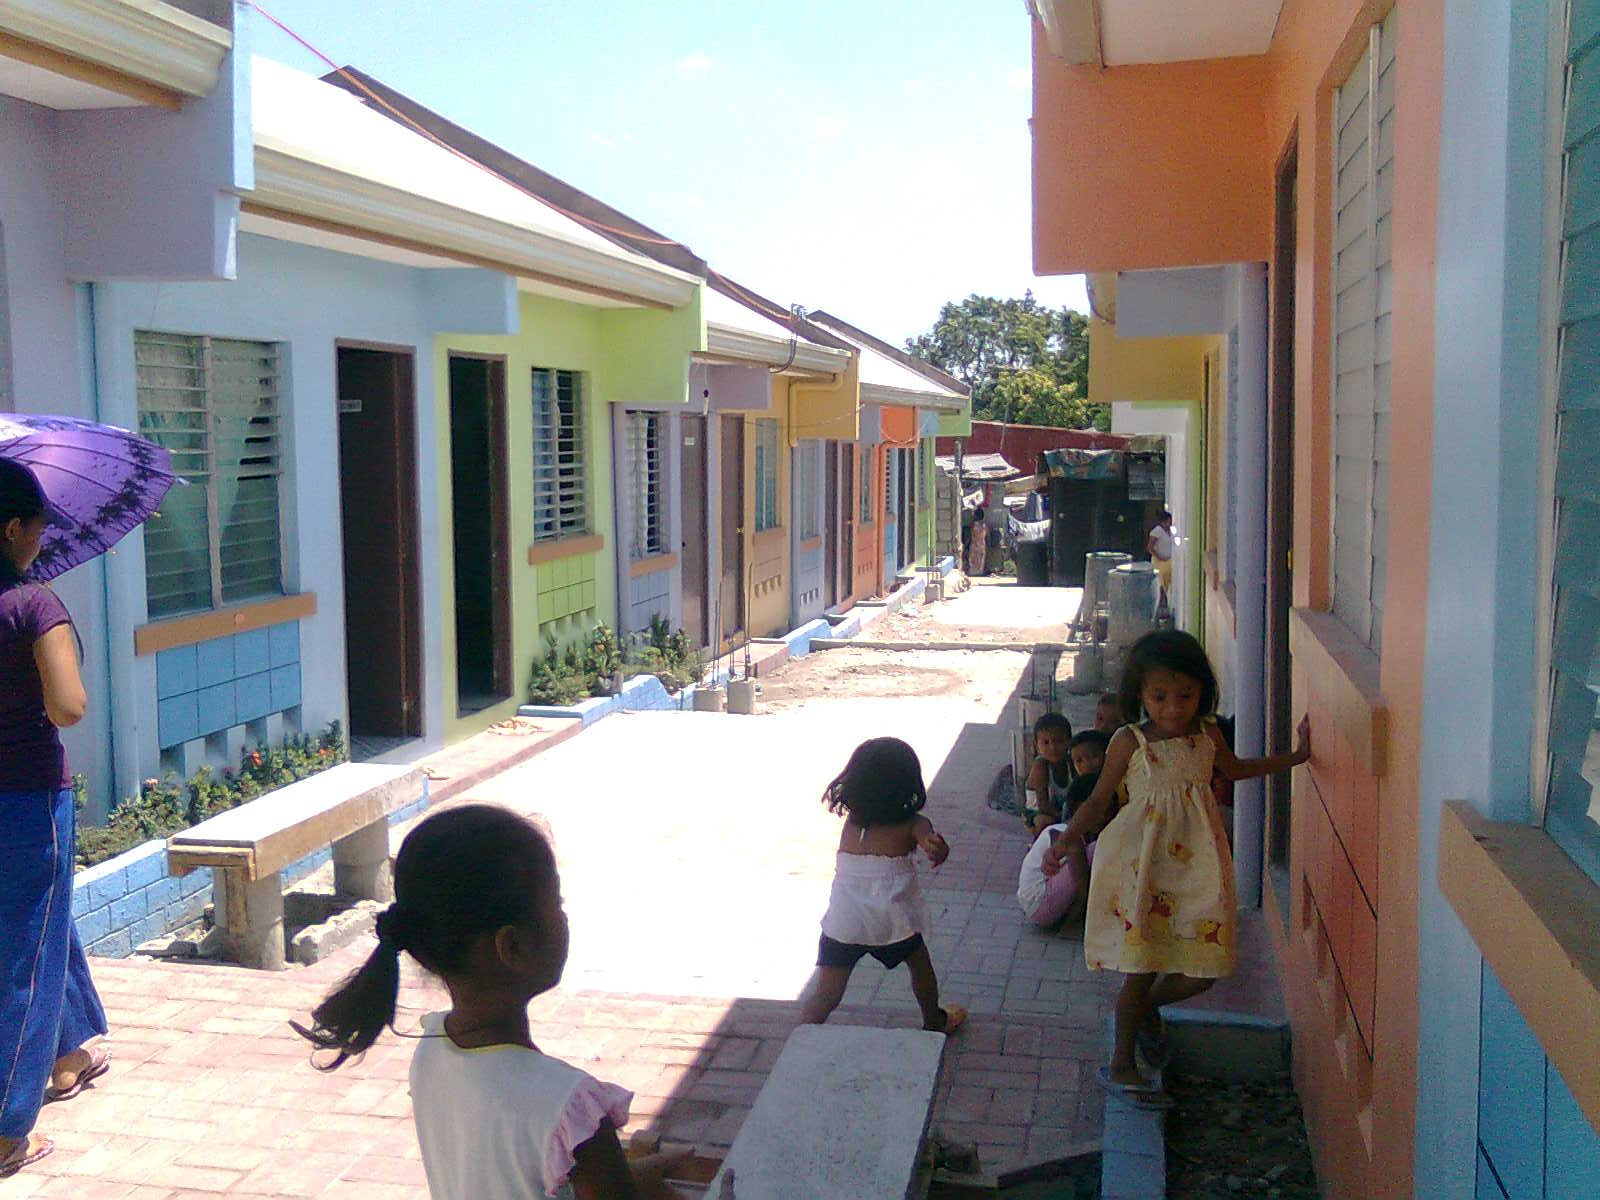 The Living Room: Transforming Slums in the Philippines